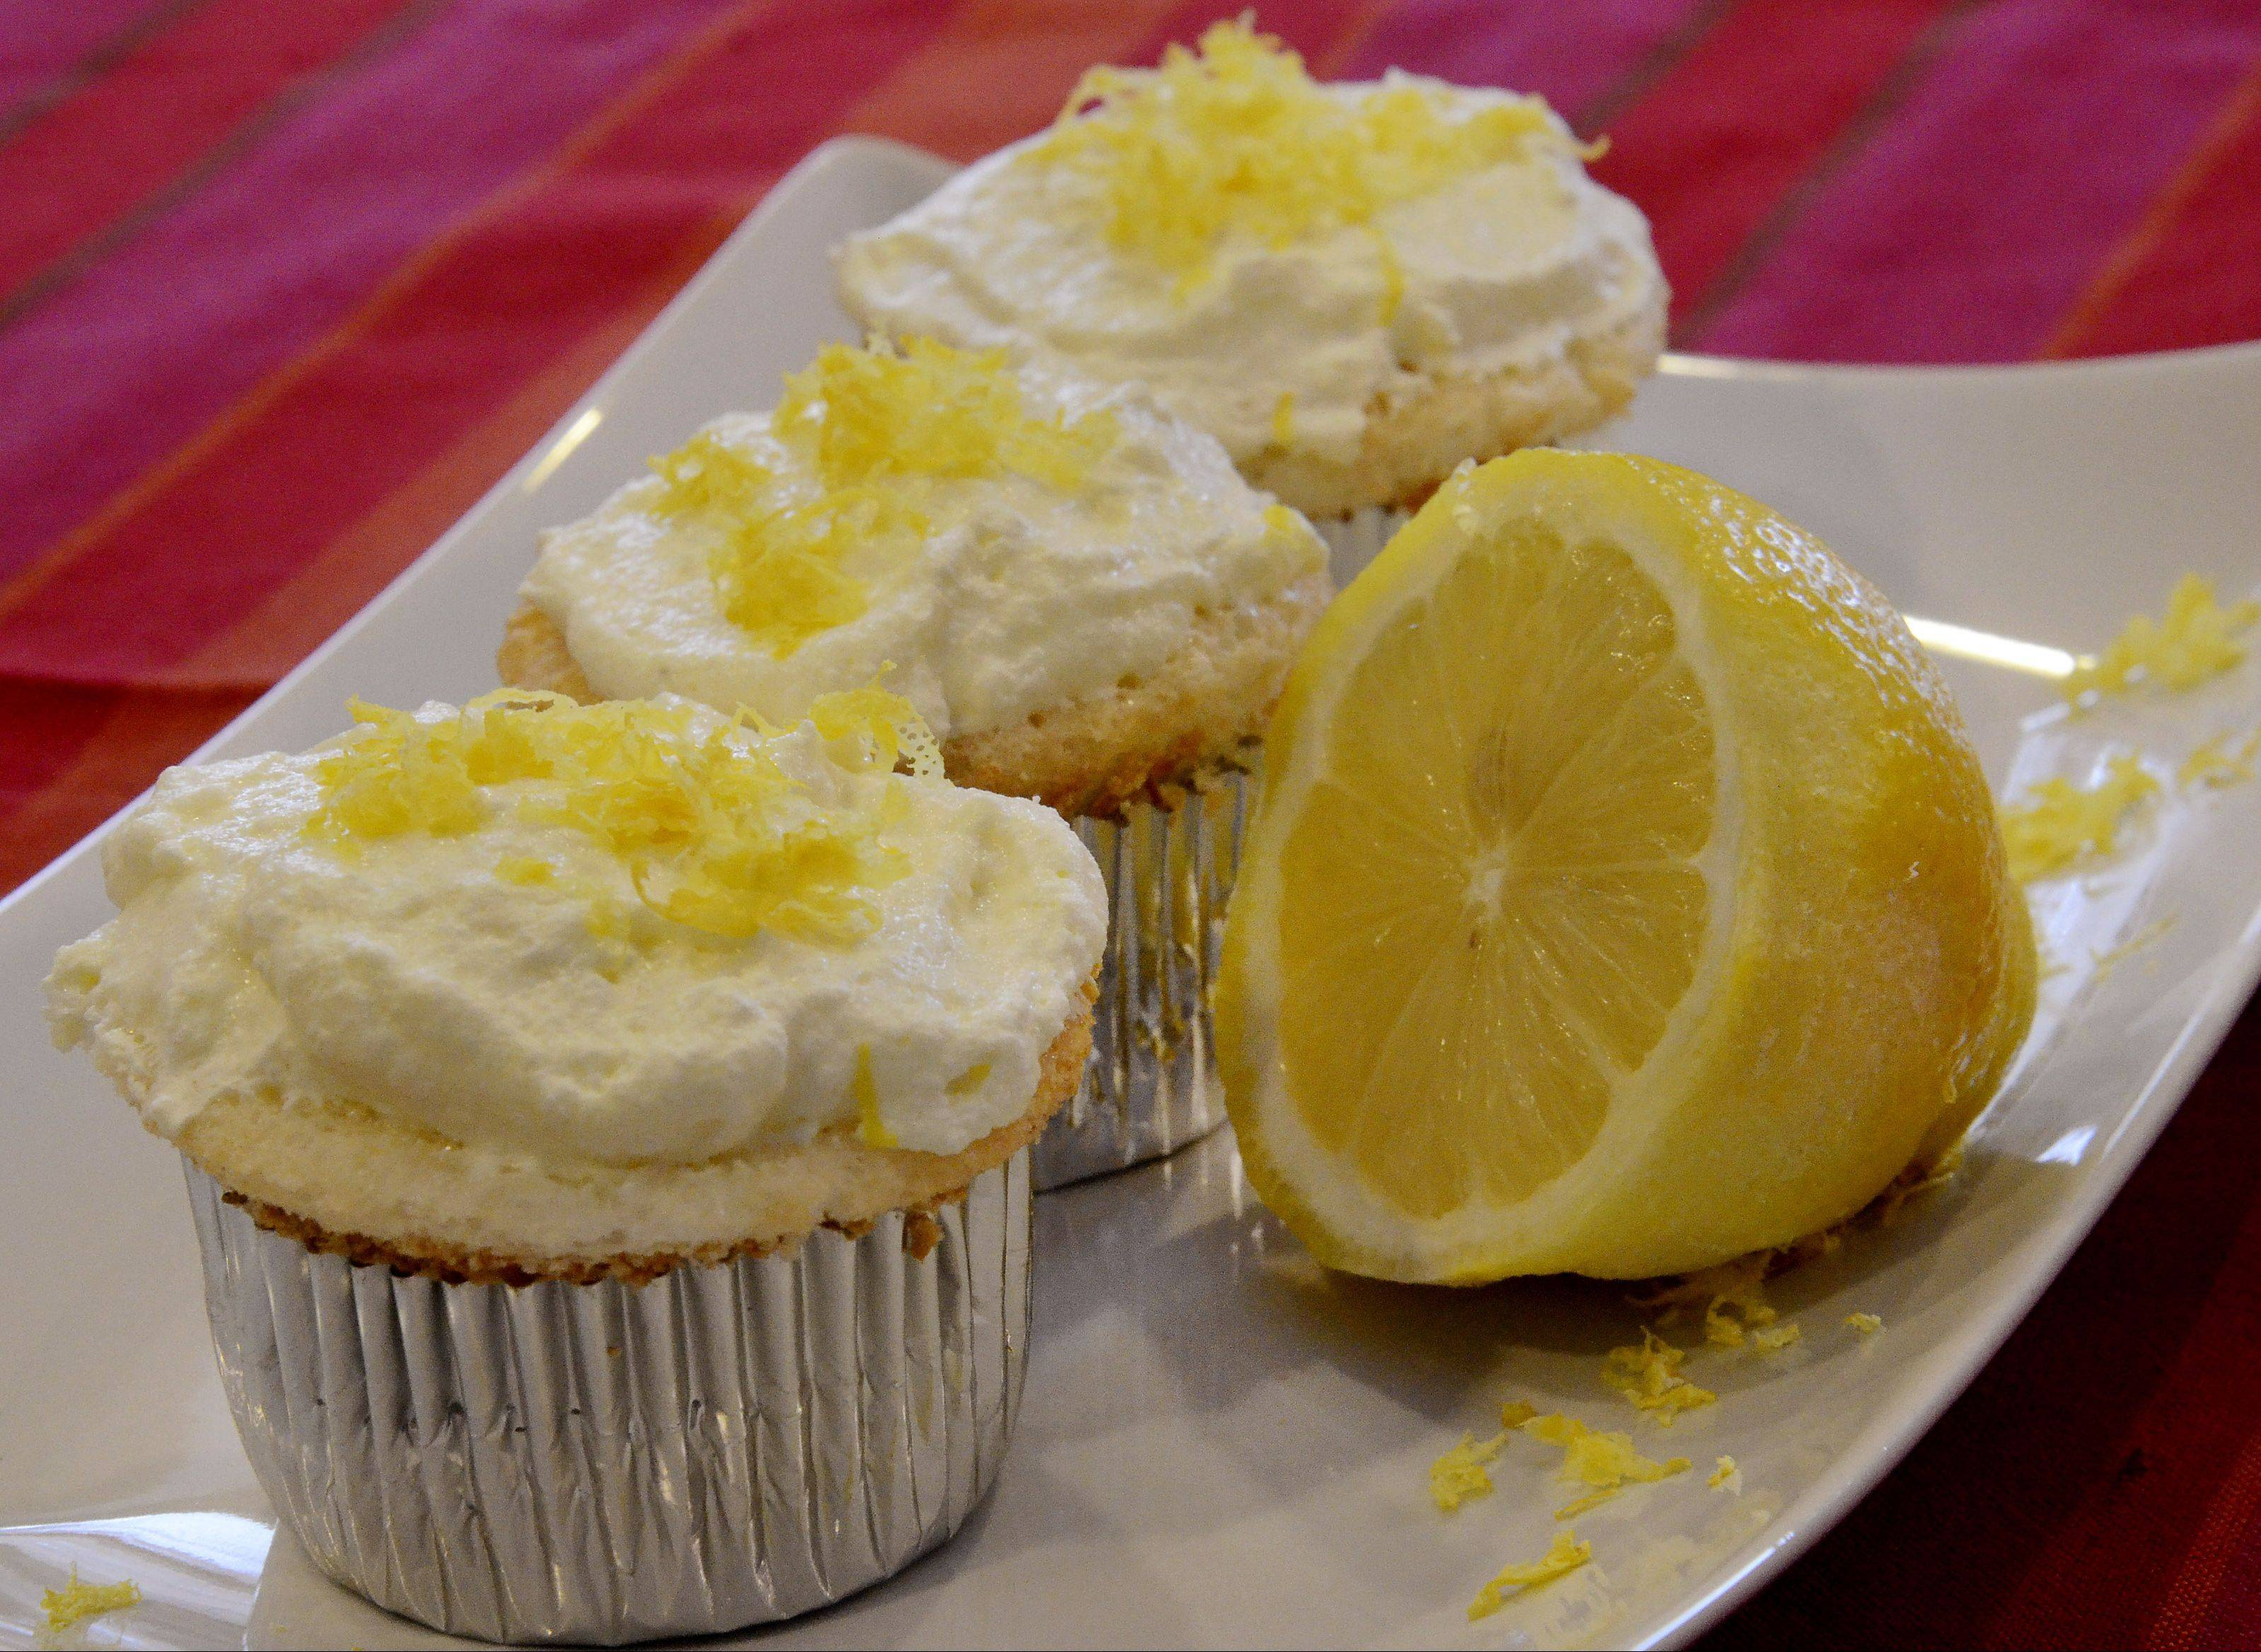 Heavenly Angel Cupcakes with Luscious Lemon Frosting will bring a bit of sunshine to rainy April days.